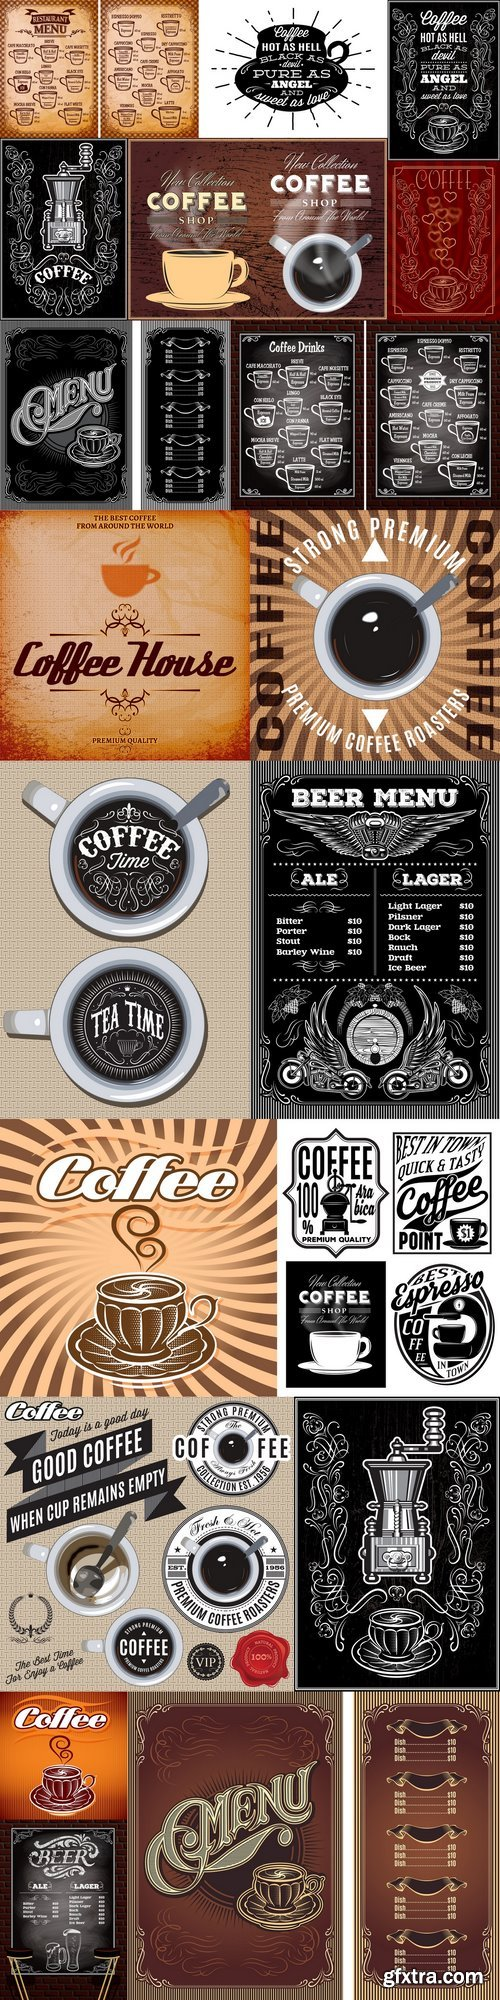 Menu template for an coffee drinks